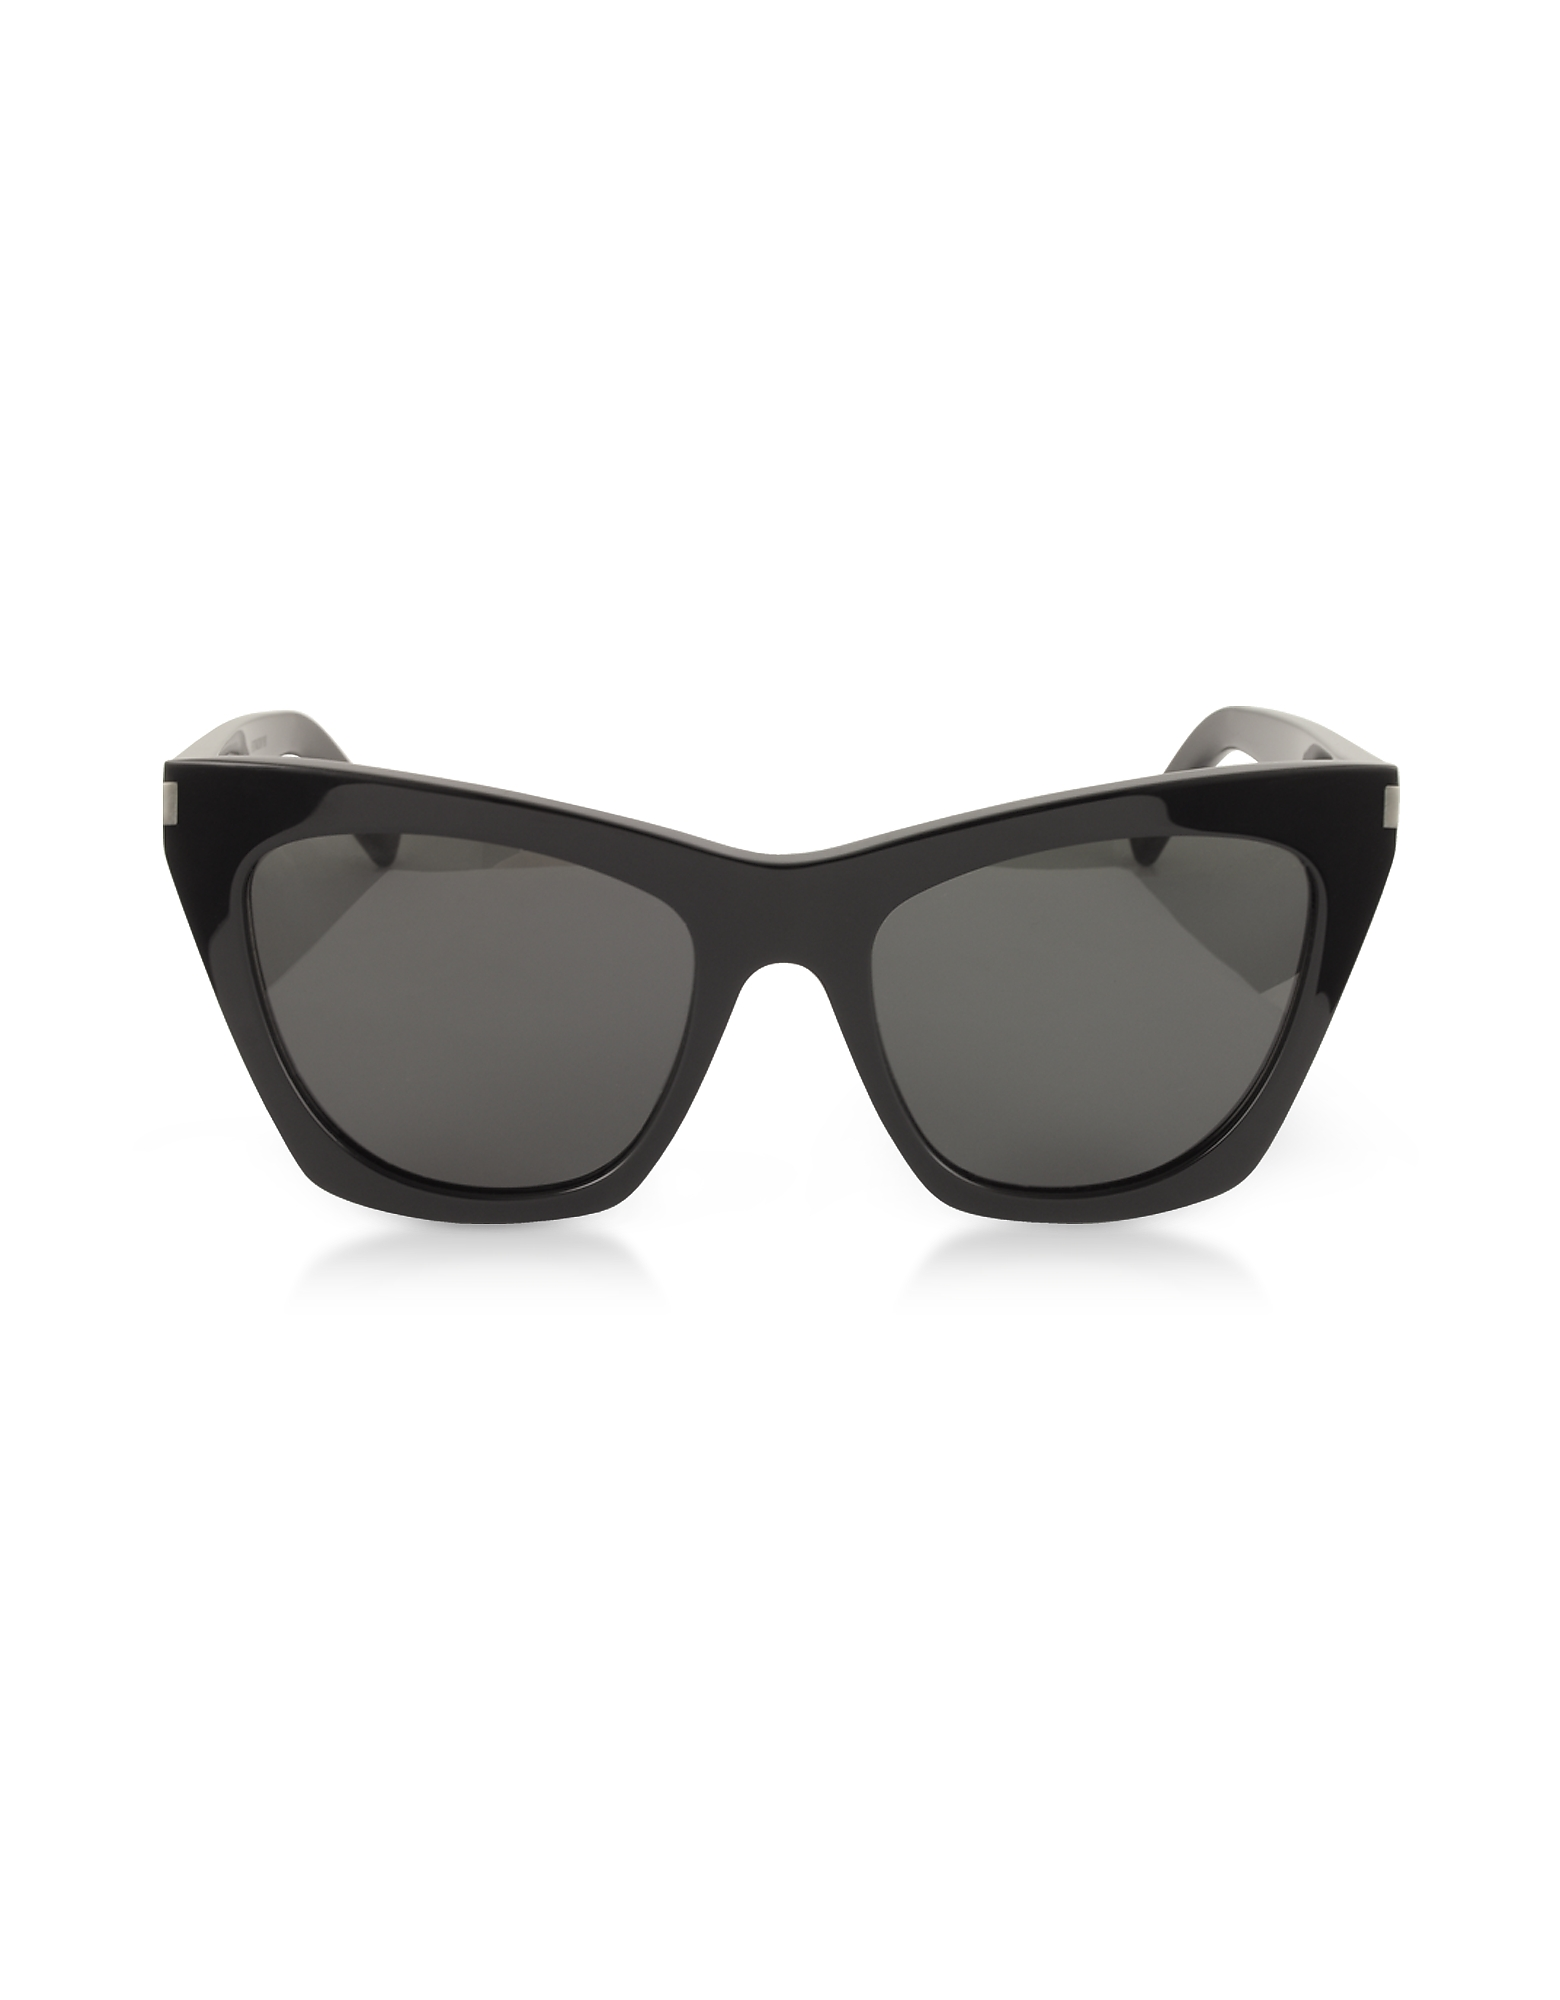 New Wave 214 KATE Acetate Sunglasses